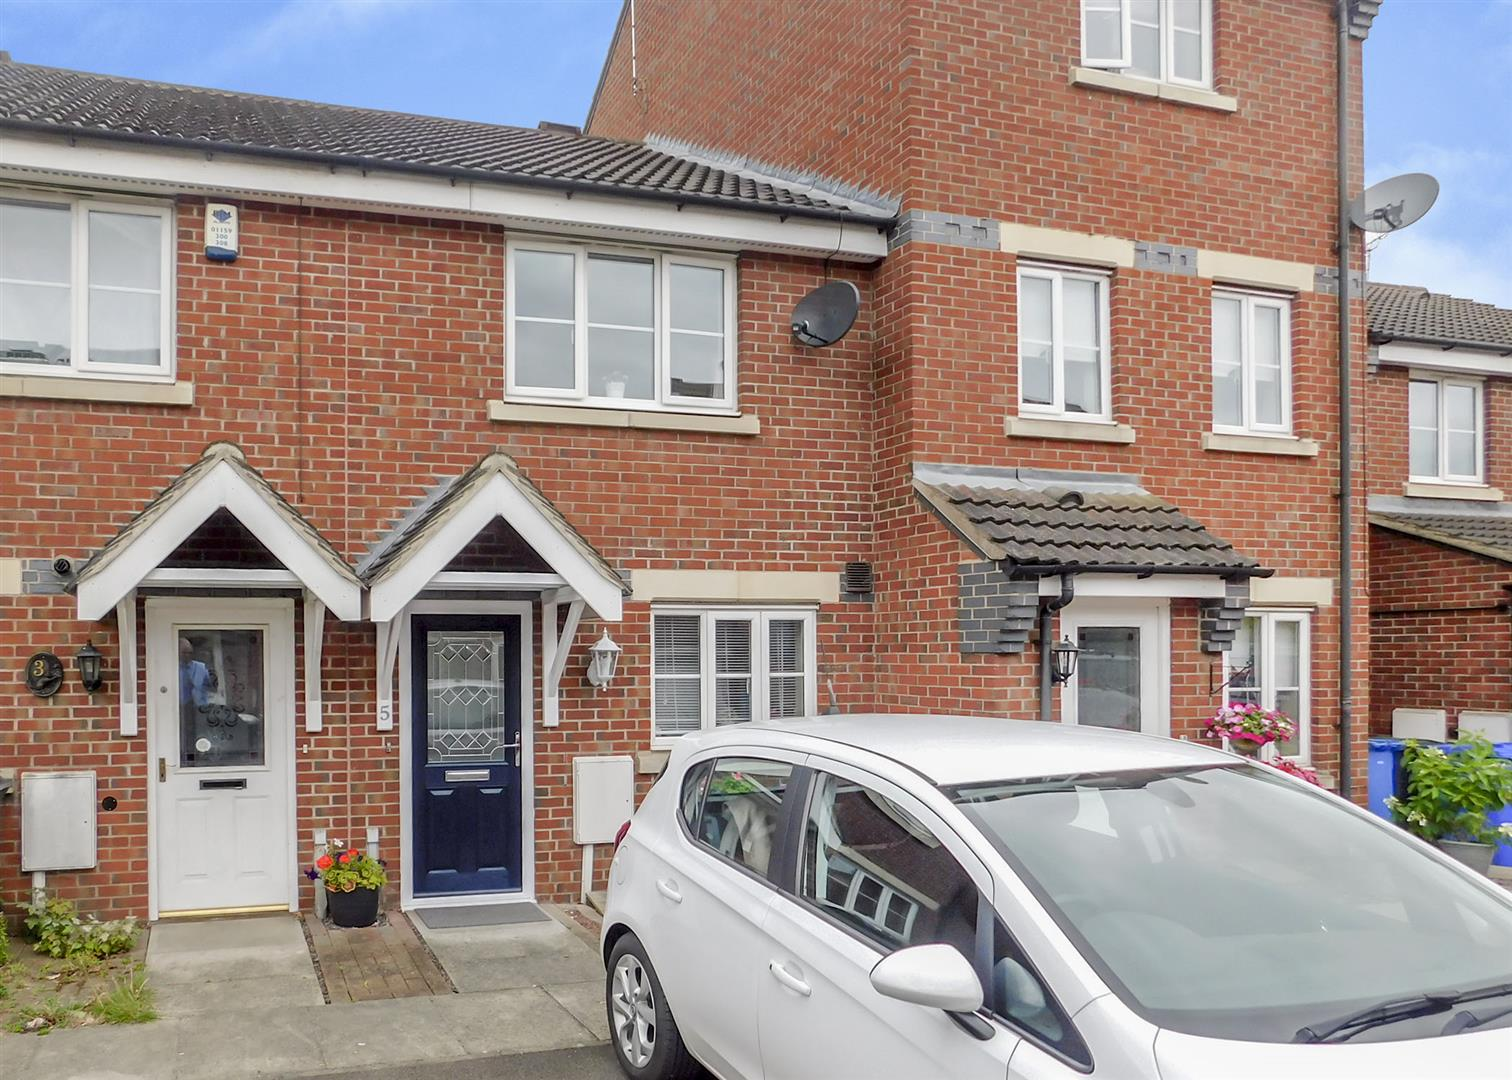 2 Bedrooms Terraced House for sale in Wren Court, Sawley